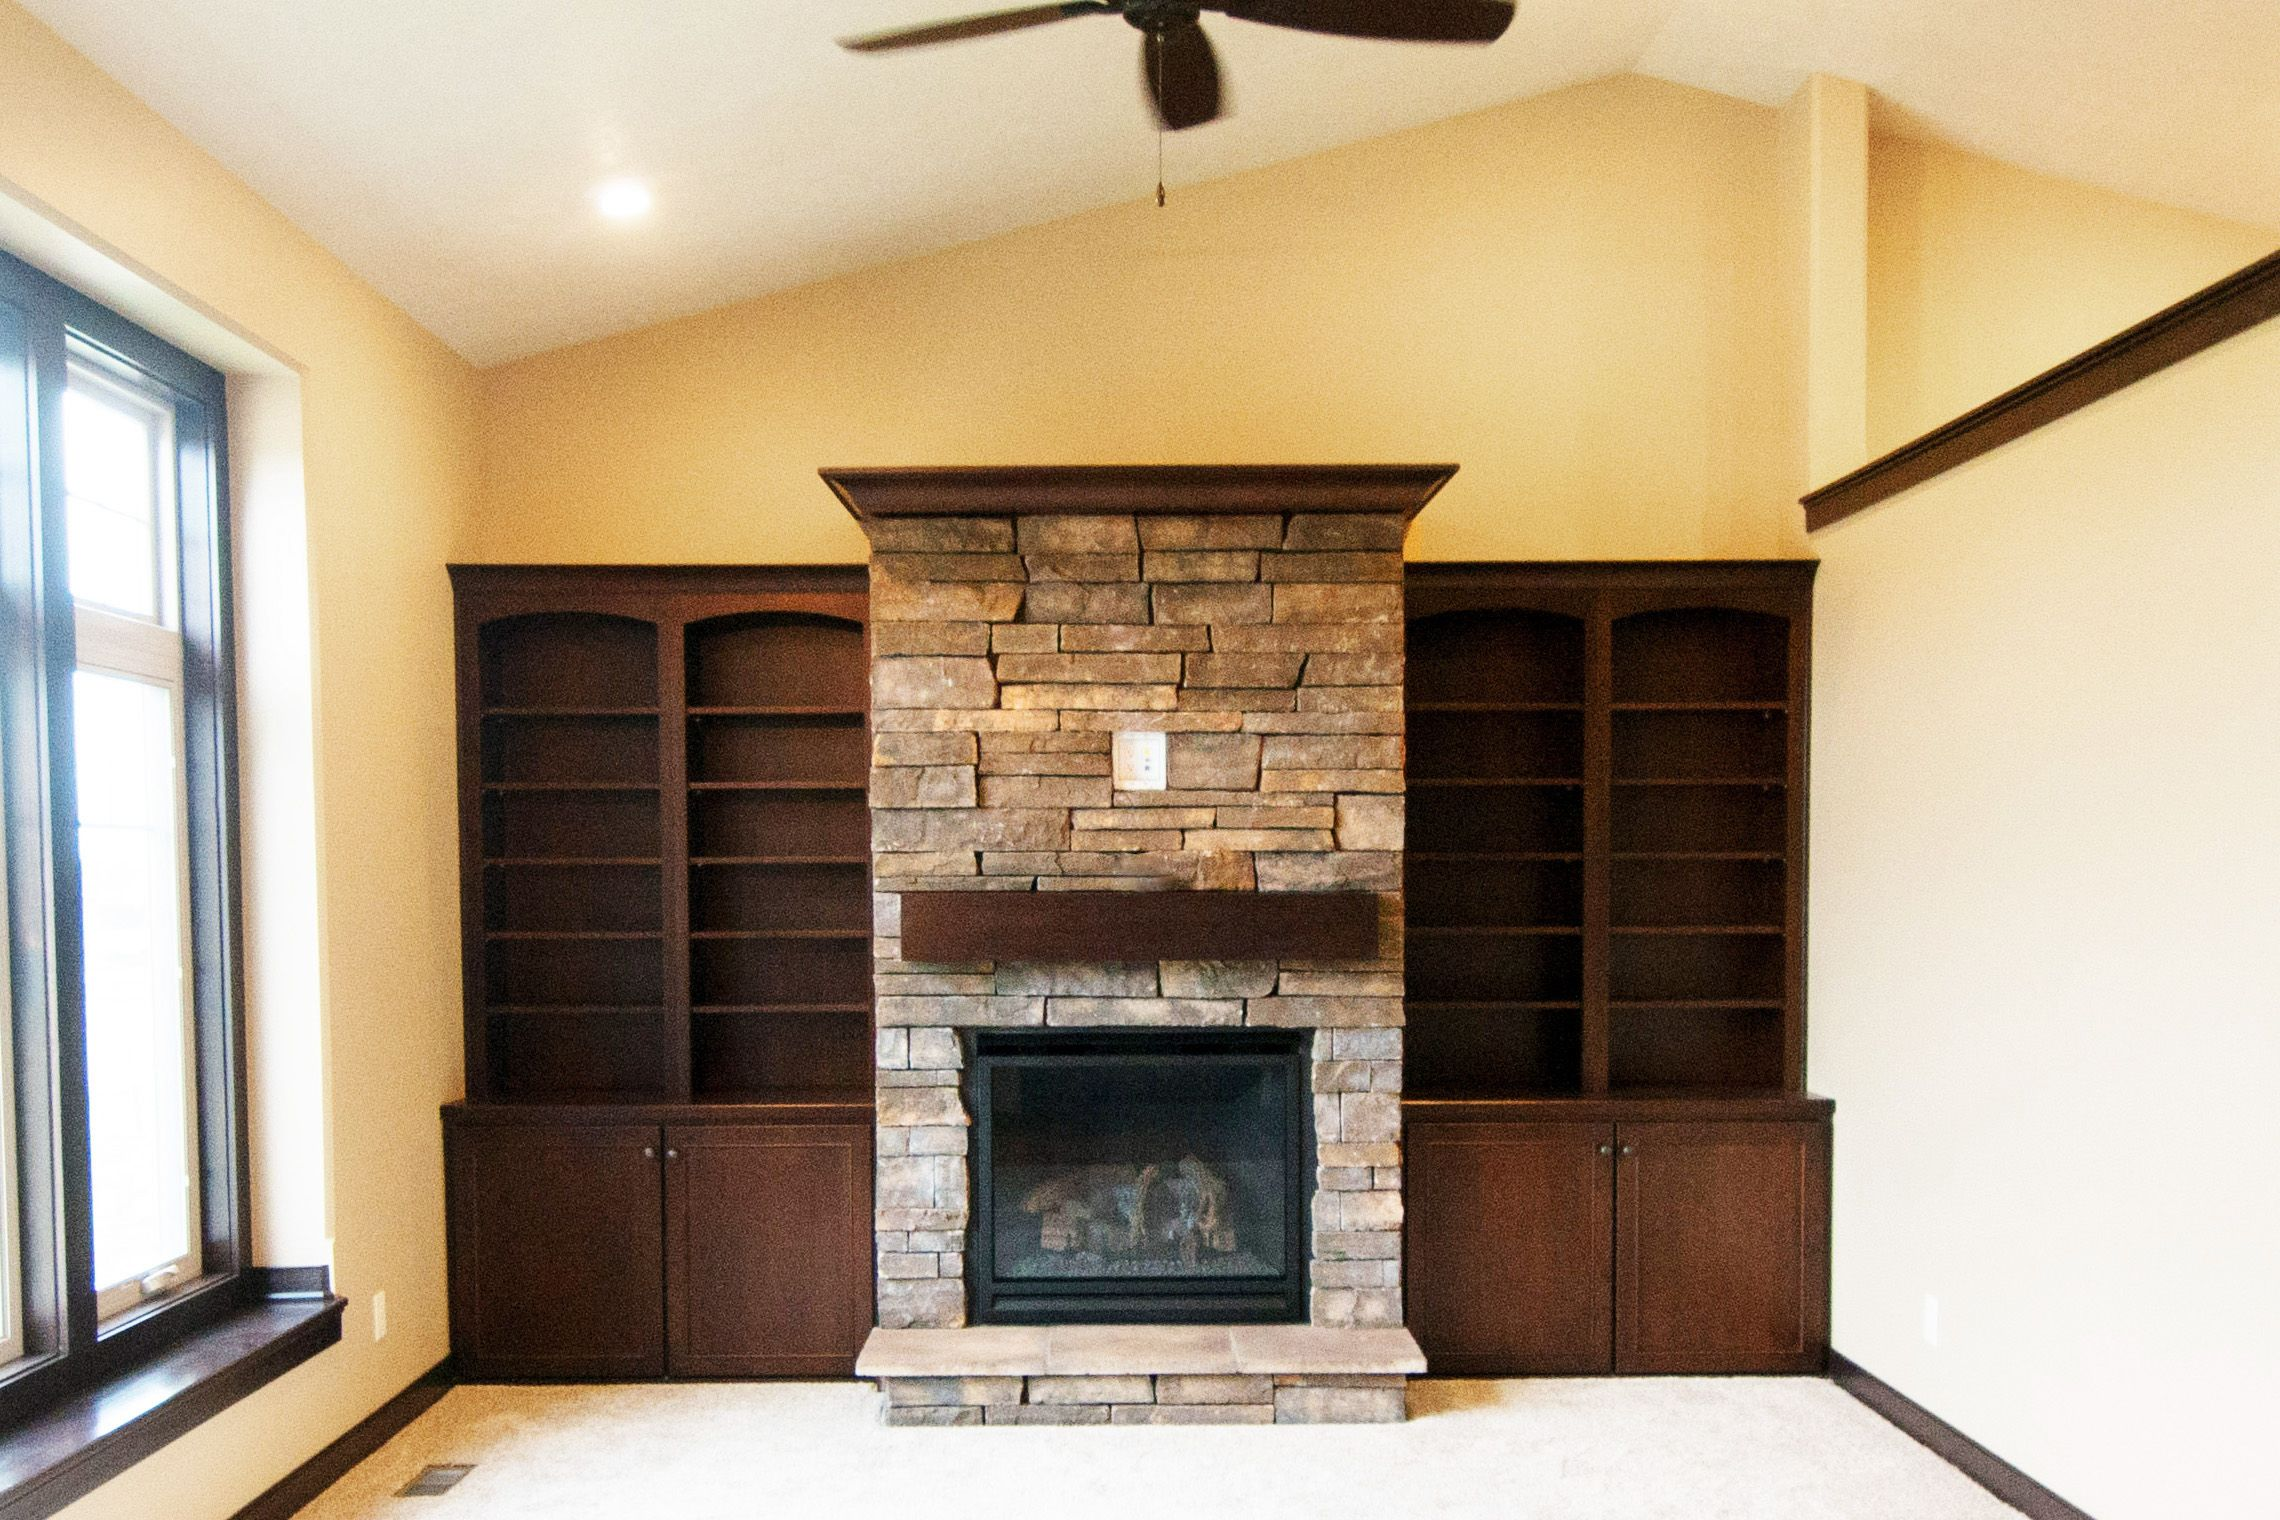 Stone fireplace in living room with built in